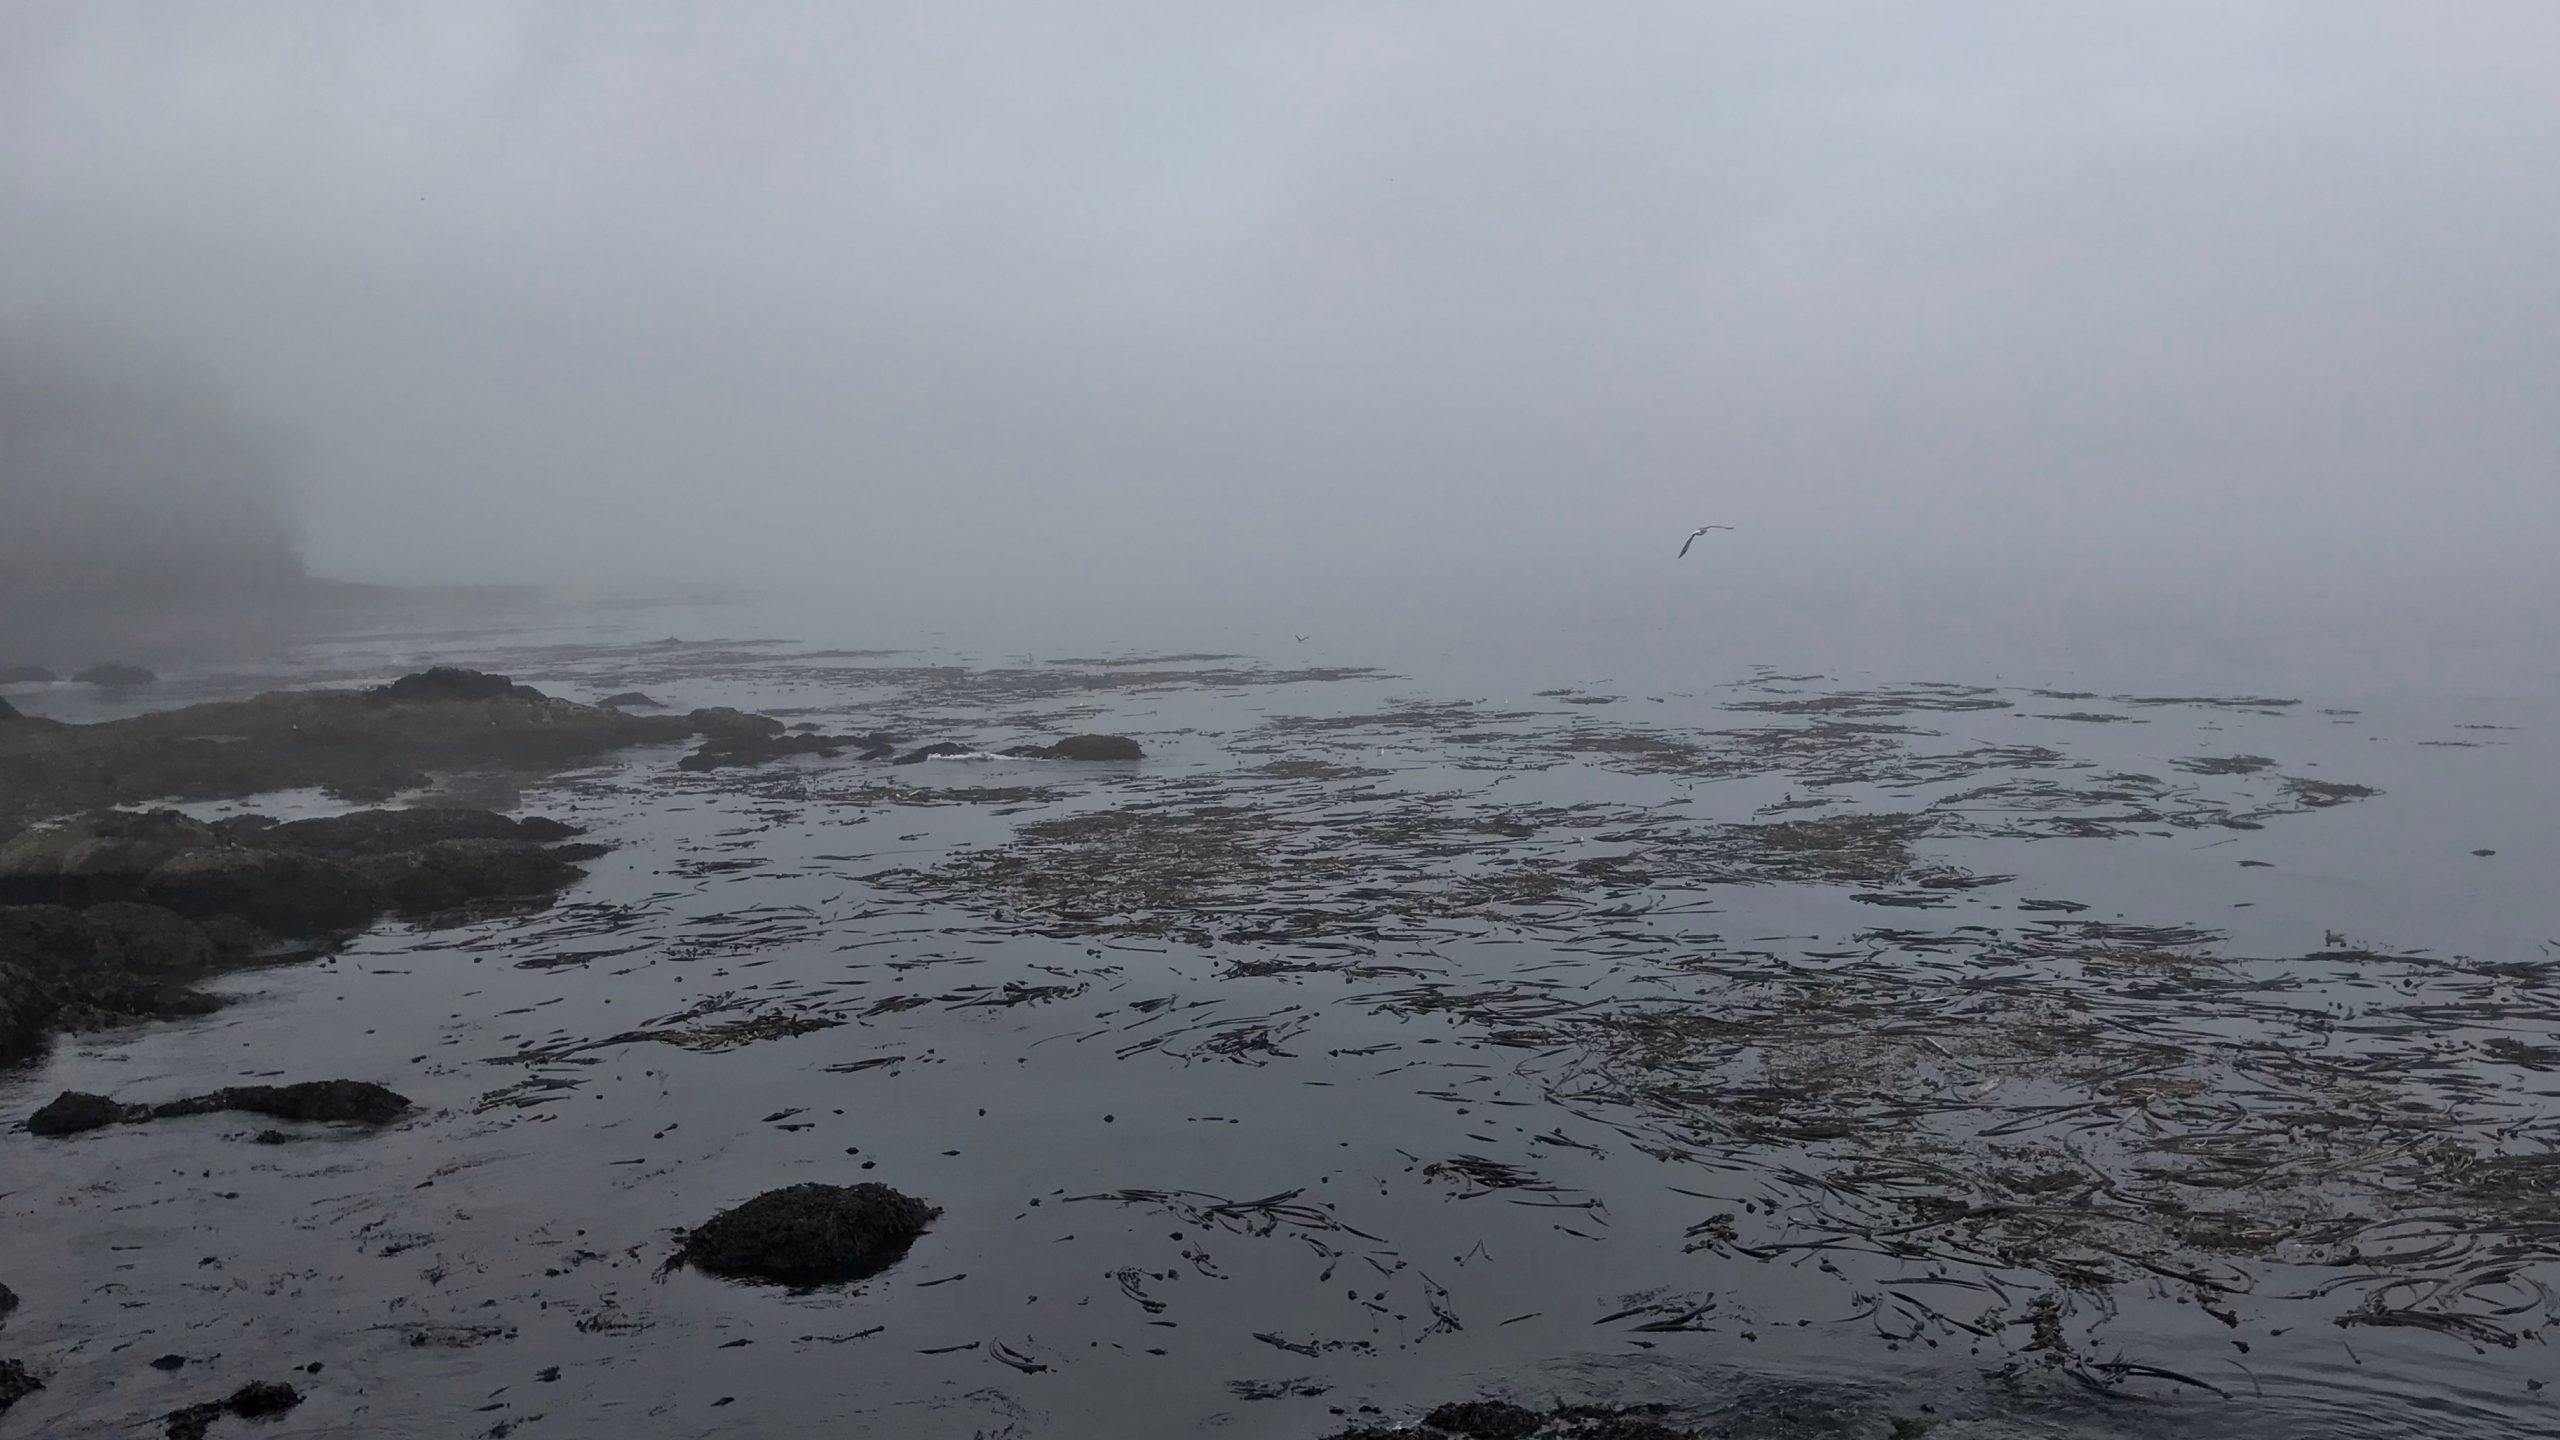 The waters off the rocky coast of Juan De Fuca Straight merge with the morning fog. A lone seagull flies through the scene, above the rocks and patches of seaweed.